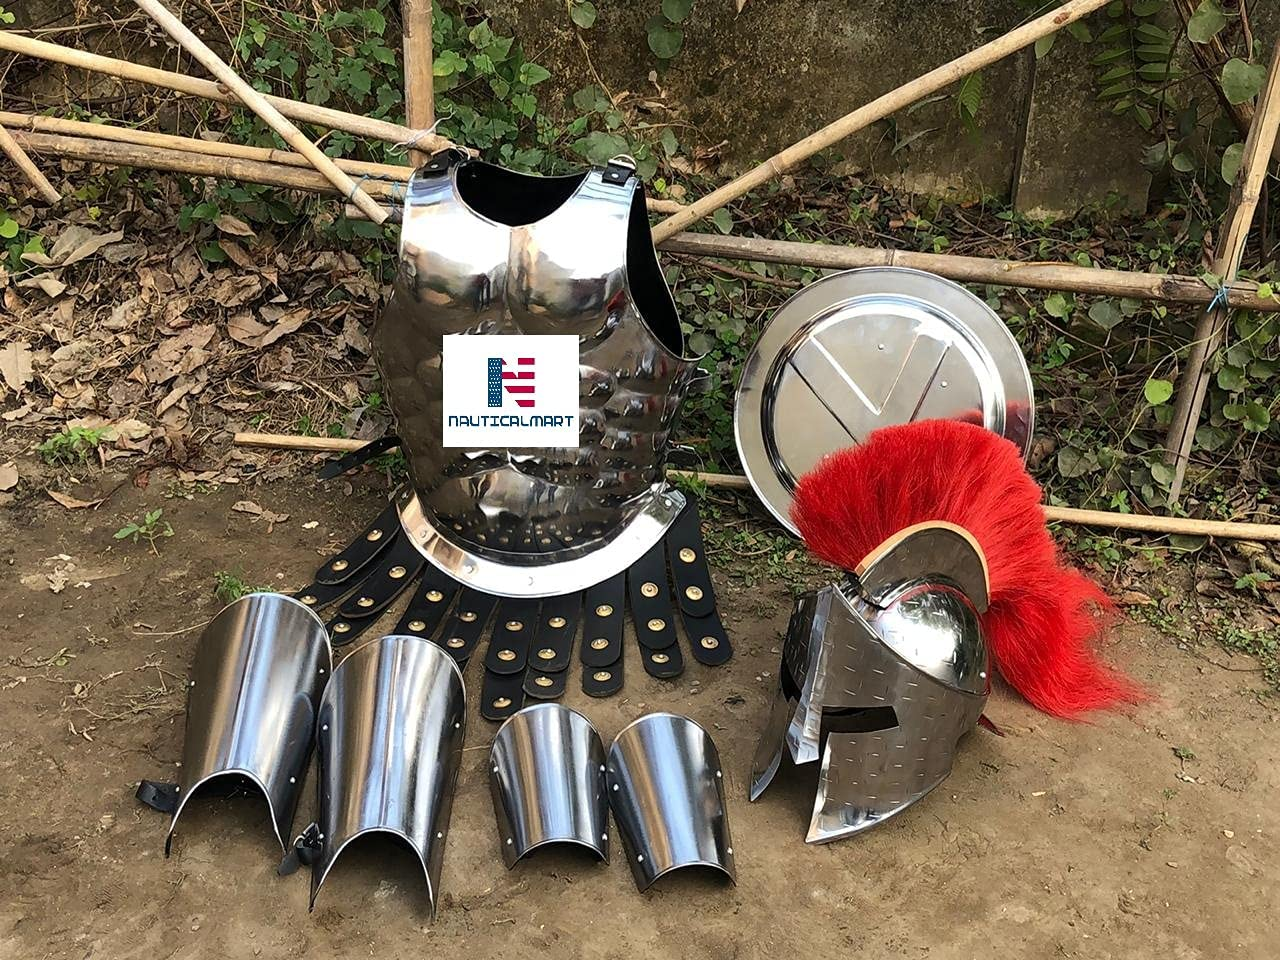 Nautical-Mart Medieval Roman King Leonidas W Spartan Challenge the lowest Year-end gift price of Japan ☆ 300 Helmet